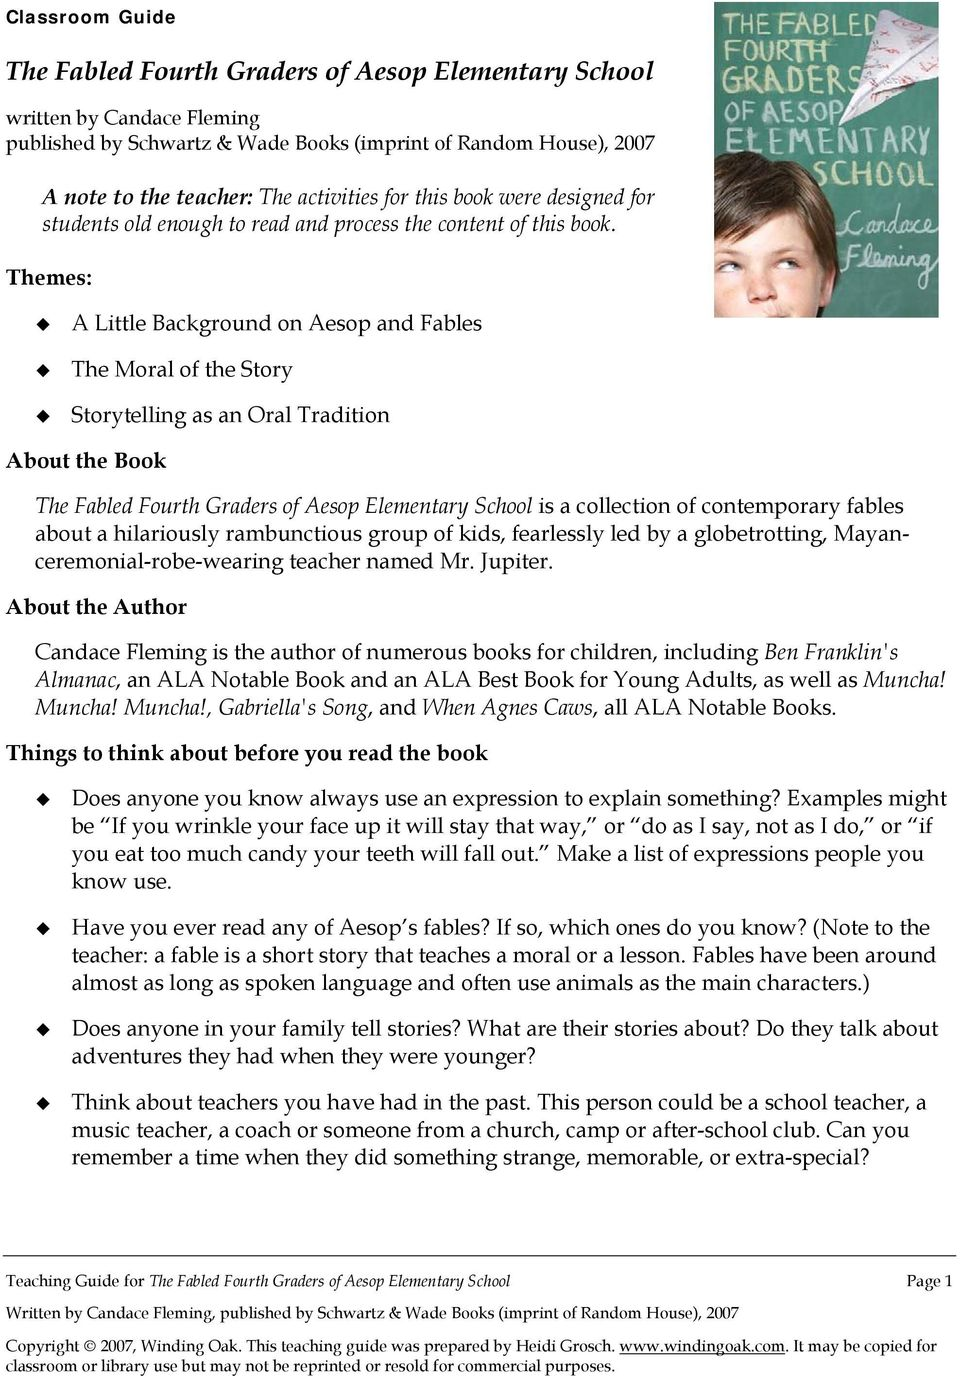 A List Of Fables And Their Morals the fabled fourth graders of aesop elementary school - pdf